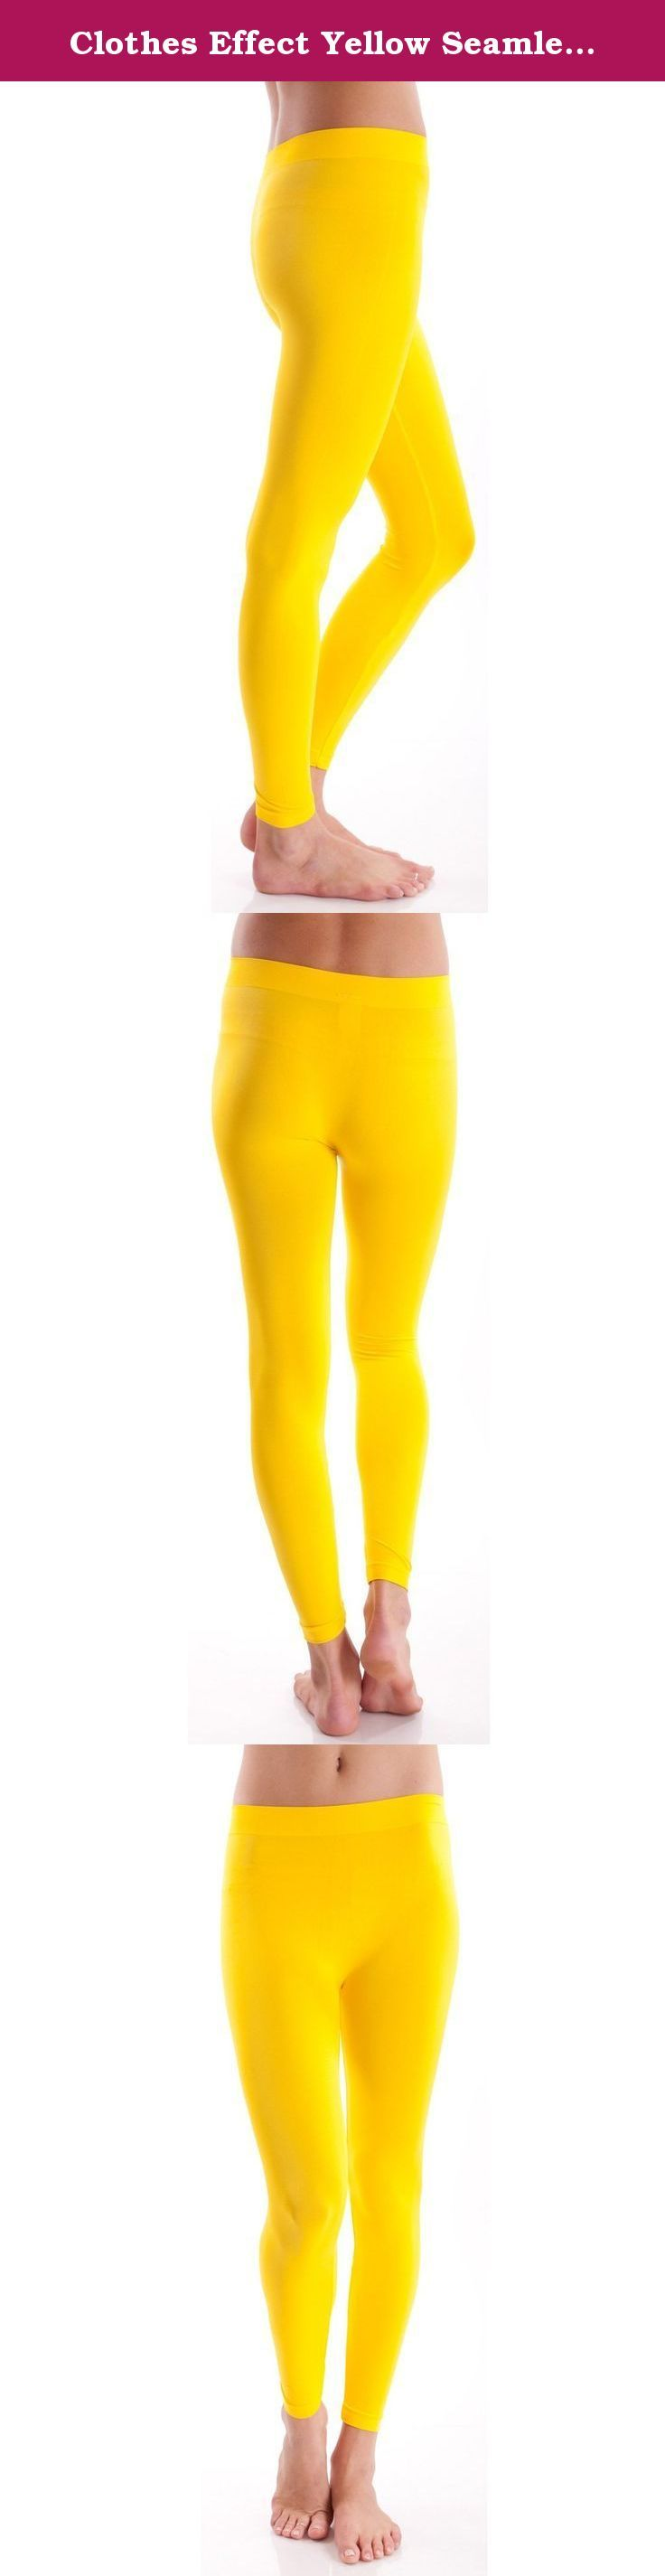 Clothes Effect Yellow Seamless Leggings Full Length. Yellow Ladies Seamless Leggings. Solid color seamless full length leggings, Form-fitting, Colors available in Black, Gray, Brown, Navy, White, Sage, Yellow, Red, Purple, Green, Blue, Magenta, Burgundy, Rust, Teal Blue, Mint, F Teal, Olive, Khaki, Neon Green, Pink, Lavender, Neon Yellow, Light Mint, Orange, Peacock Mint, and Neon Fuchsia. , 92% Microfiber Nylon, 8% Spandex.